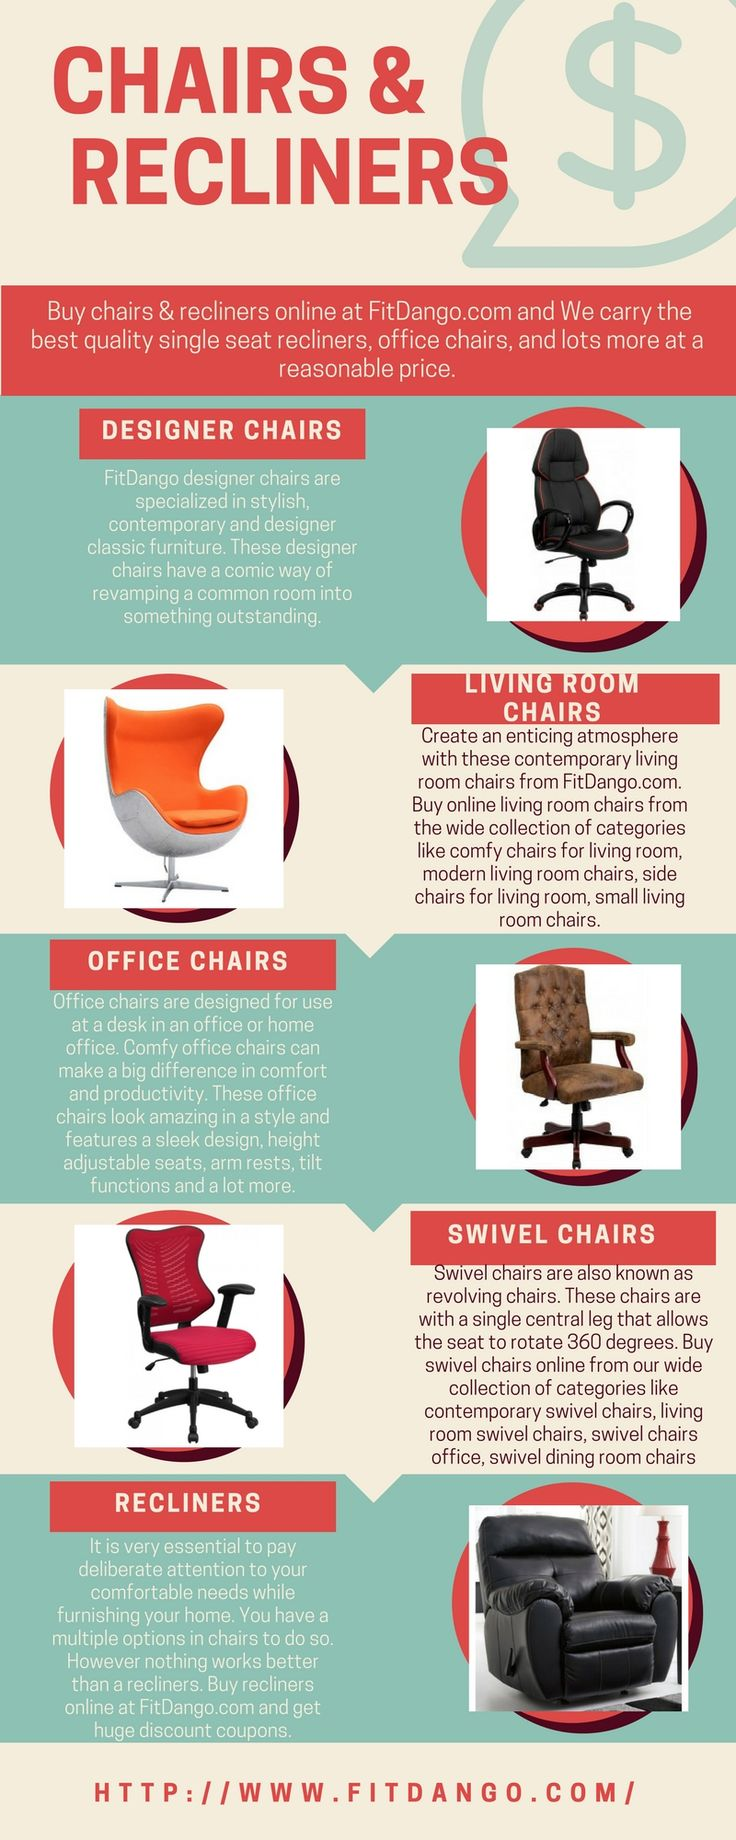 Choosing the right reclining furniture for your home is a big task? Then, here at FitDango, we help you to find the best chairs & recliners at an affordable price.